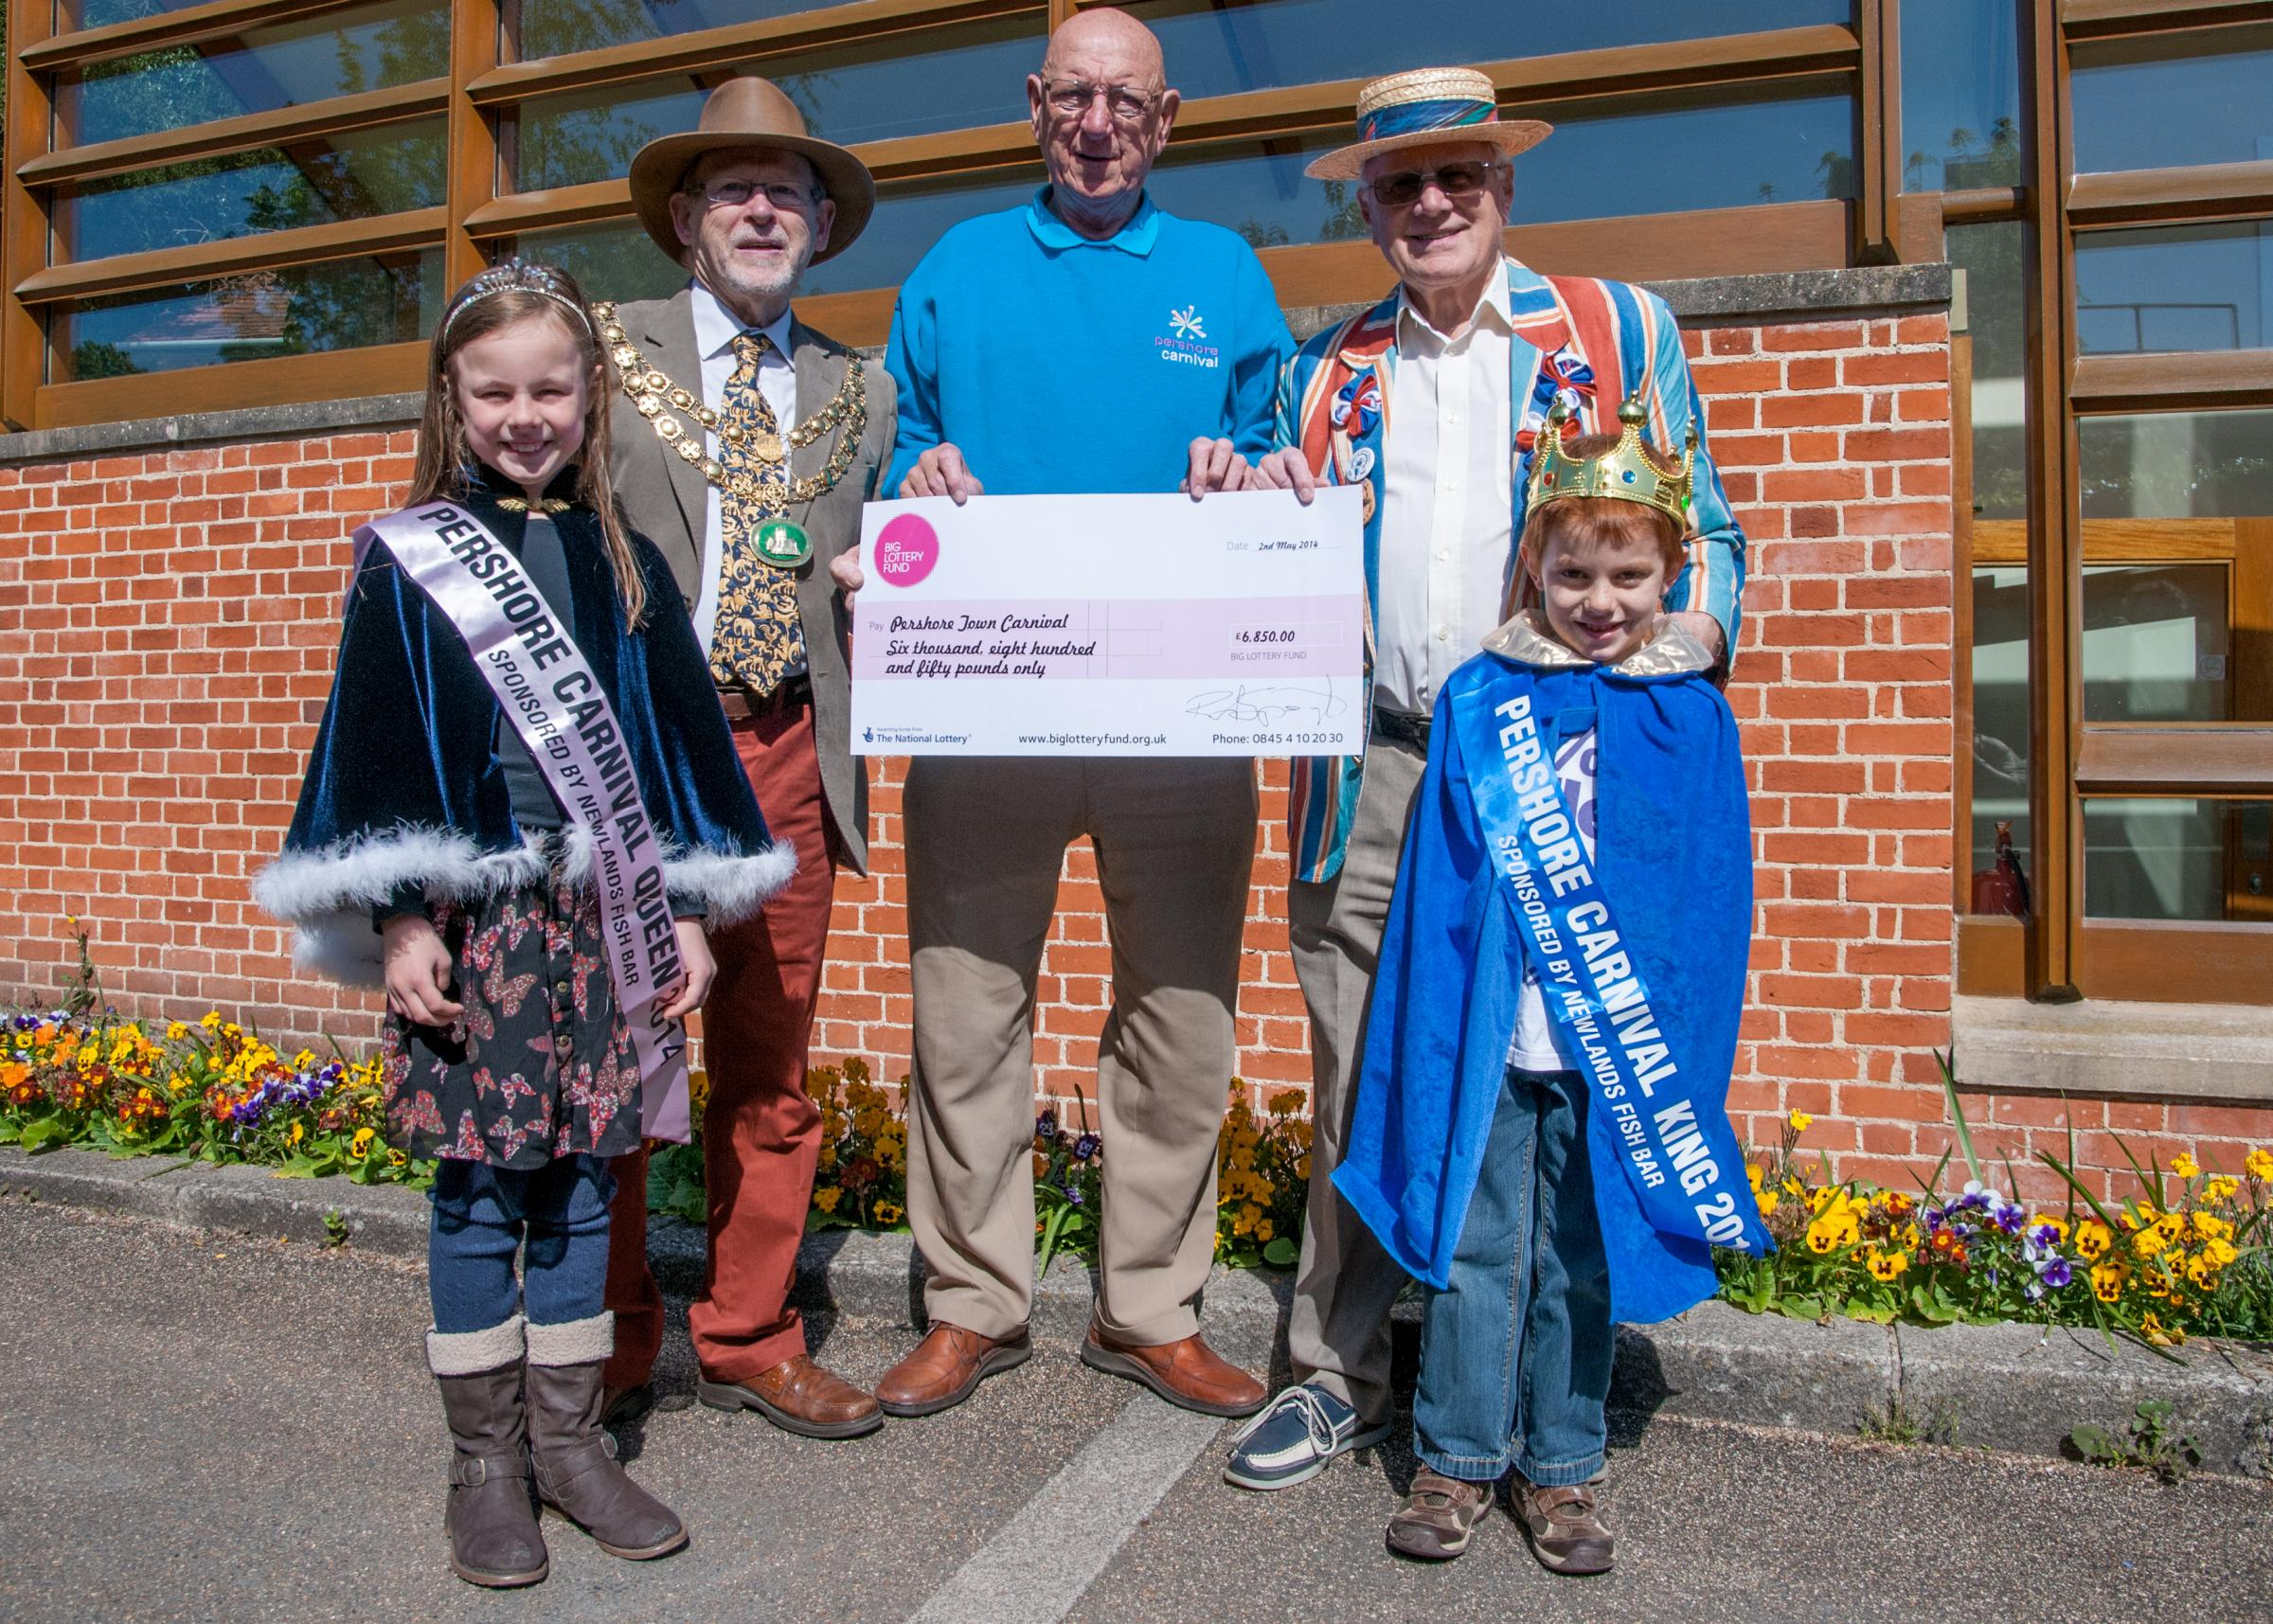 Carnival Queen Lucy Jones, Pershore Mayor Charles Tucker, Carnival Chairman Colin Shepherd, Evening Concert Organiser Robert Speight, 2014 Carnival King Corley Frost. (left to right). Photo by Craig Frost.